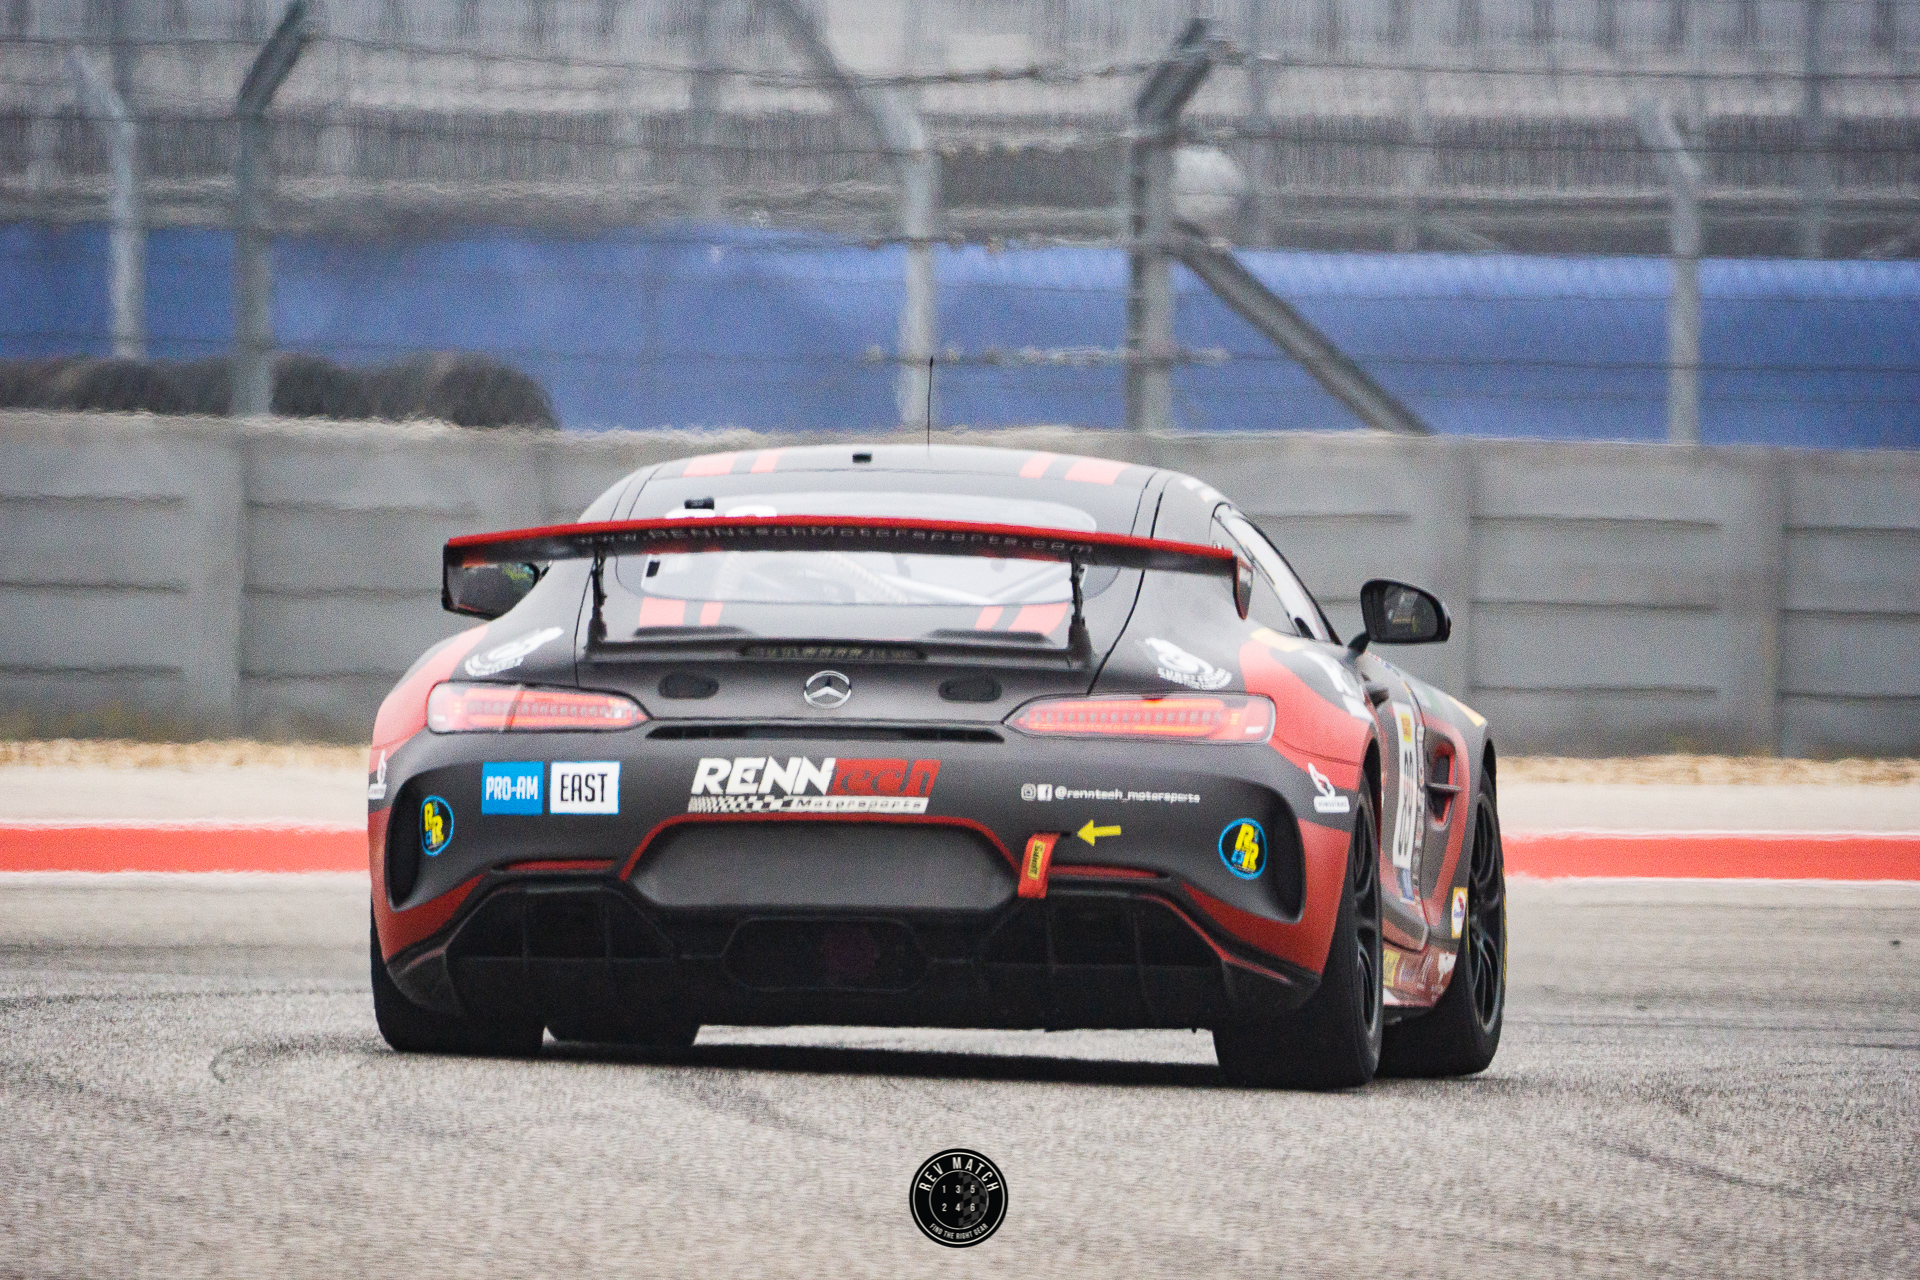 Blancpain GT COTA 2019 Rev Match Media-39.jpg